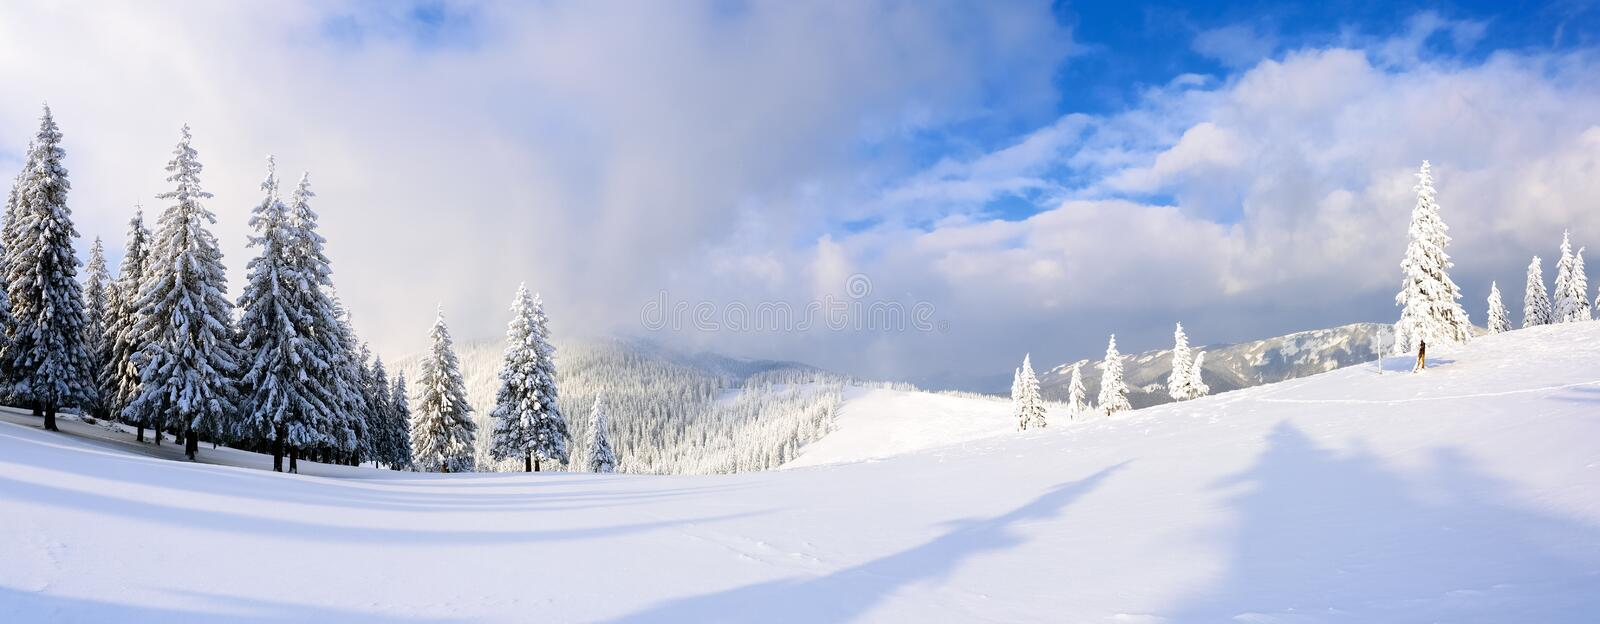 Spectacular panorama is opened on mountains, trees covered with white snow, lawn and blue sky with clouds. stock image